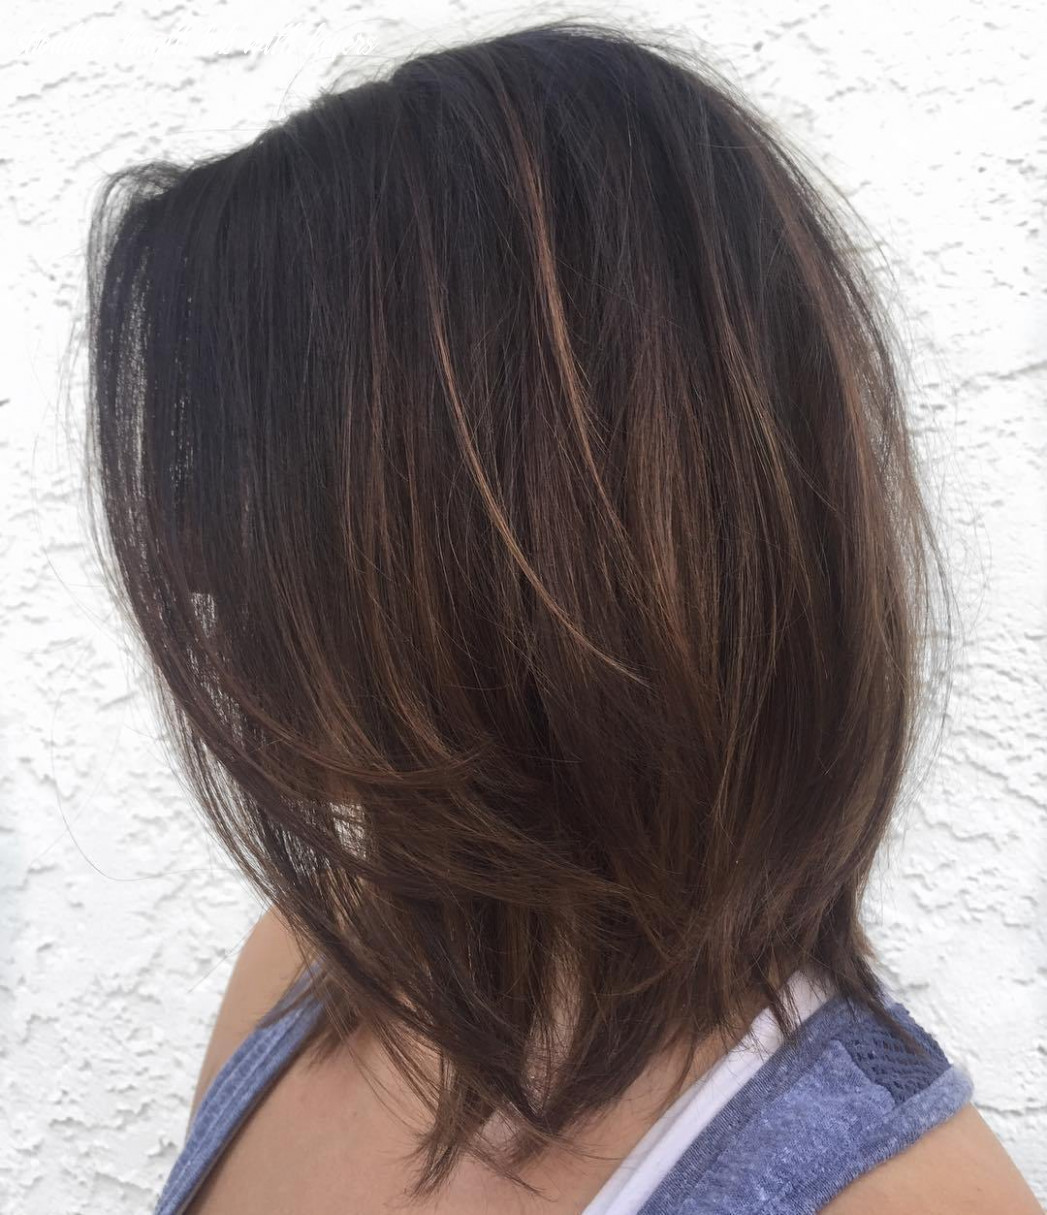 9 perfect medium length hairstyles for thin hair in 9 shoulder length bob with layers